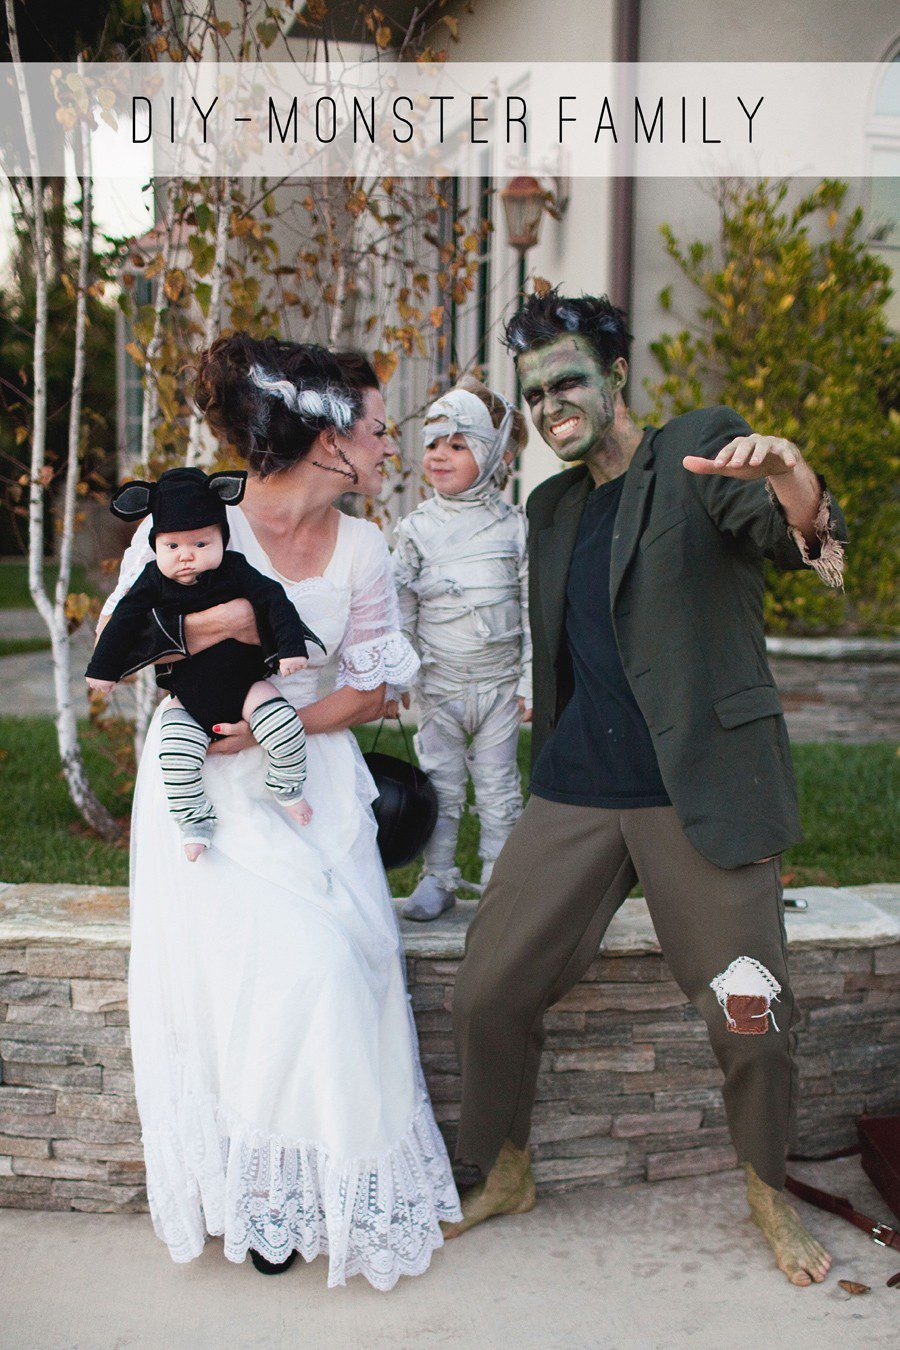 Monster Family costume idea from Tell Love and Party, plus 10 favorite family costumes (with ideas for baby too!) from popular Florida lifestyle blogger Tabitha Blue of Fresh Mommy Blog!   Cute Halloween Family Costume Ideas featured by top Florida lifestyle blogger, Fresh Mommy Blog: Monster Family